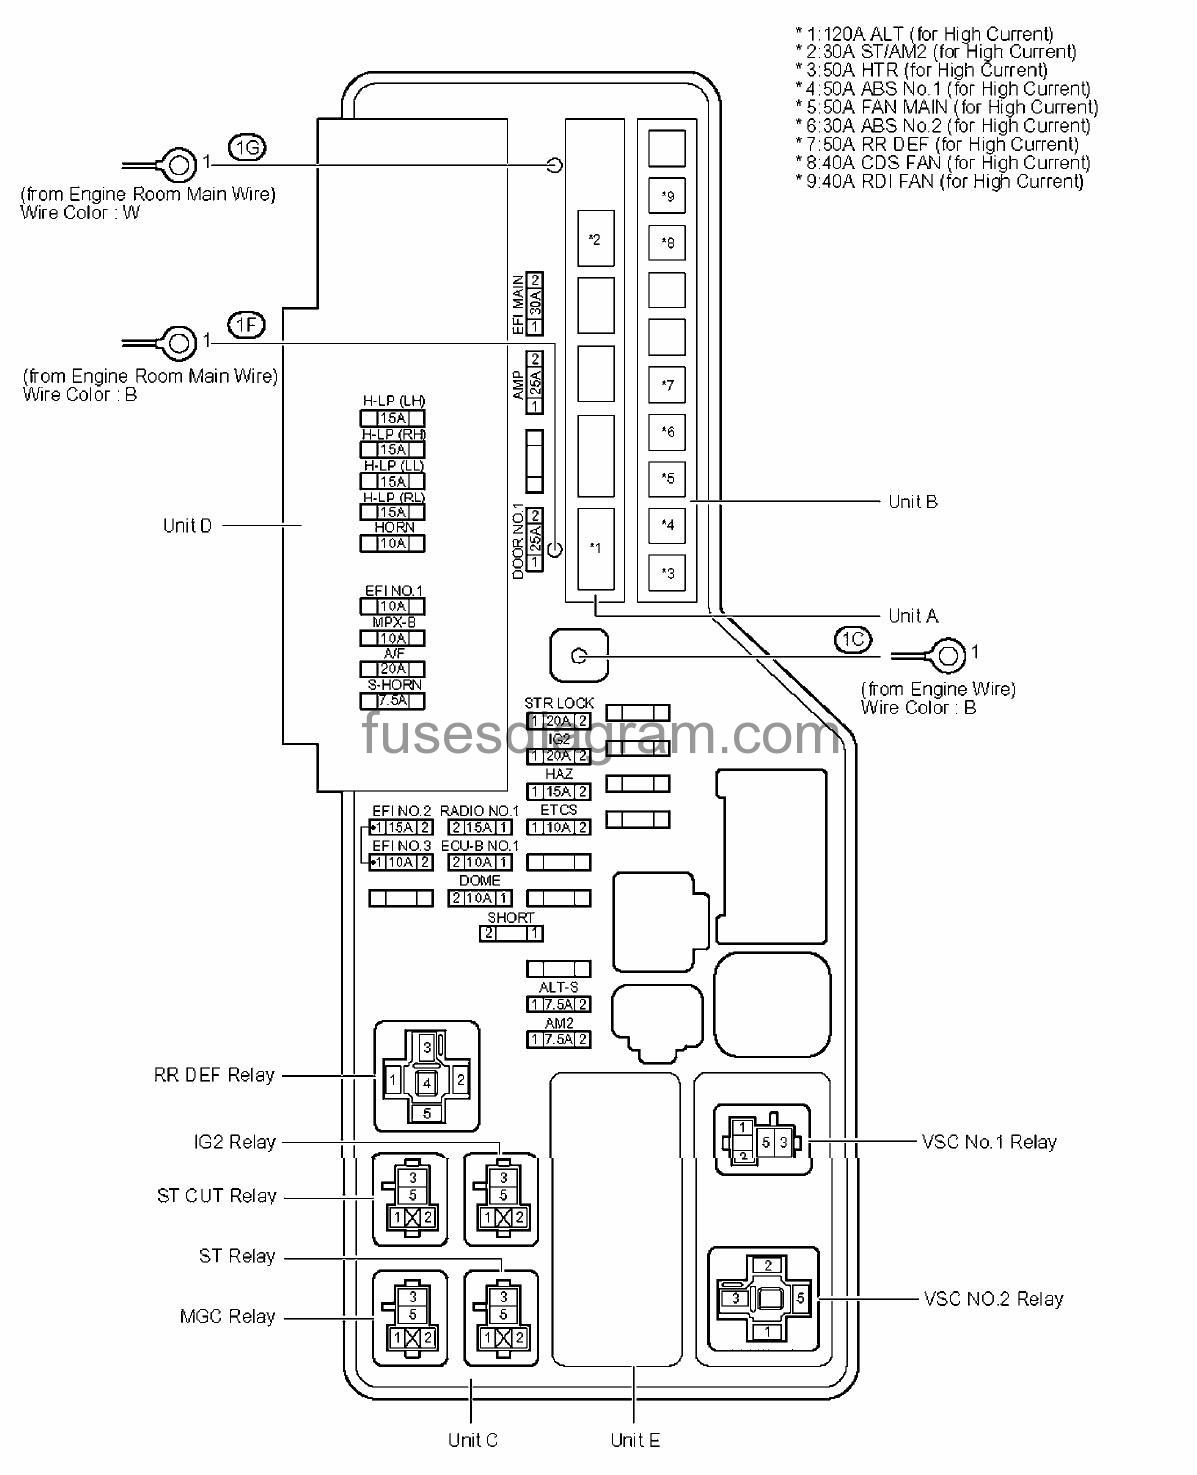 Fuse box Toyota Camry XV40Fuses box diagram